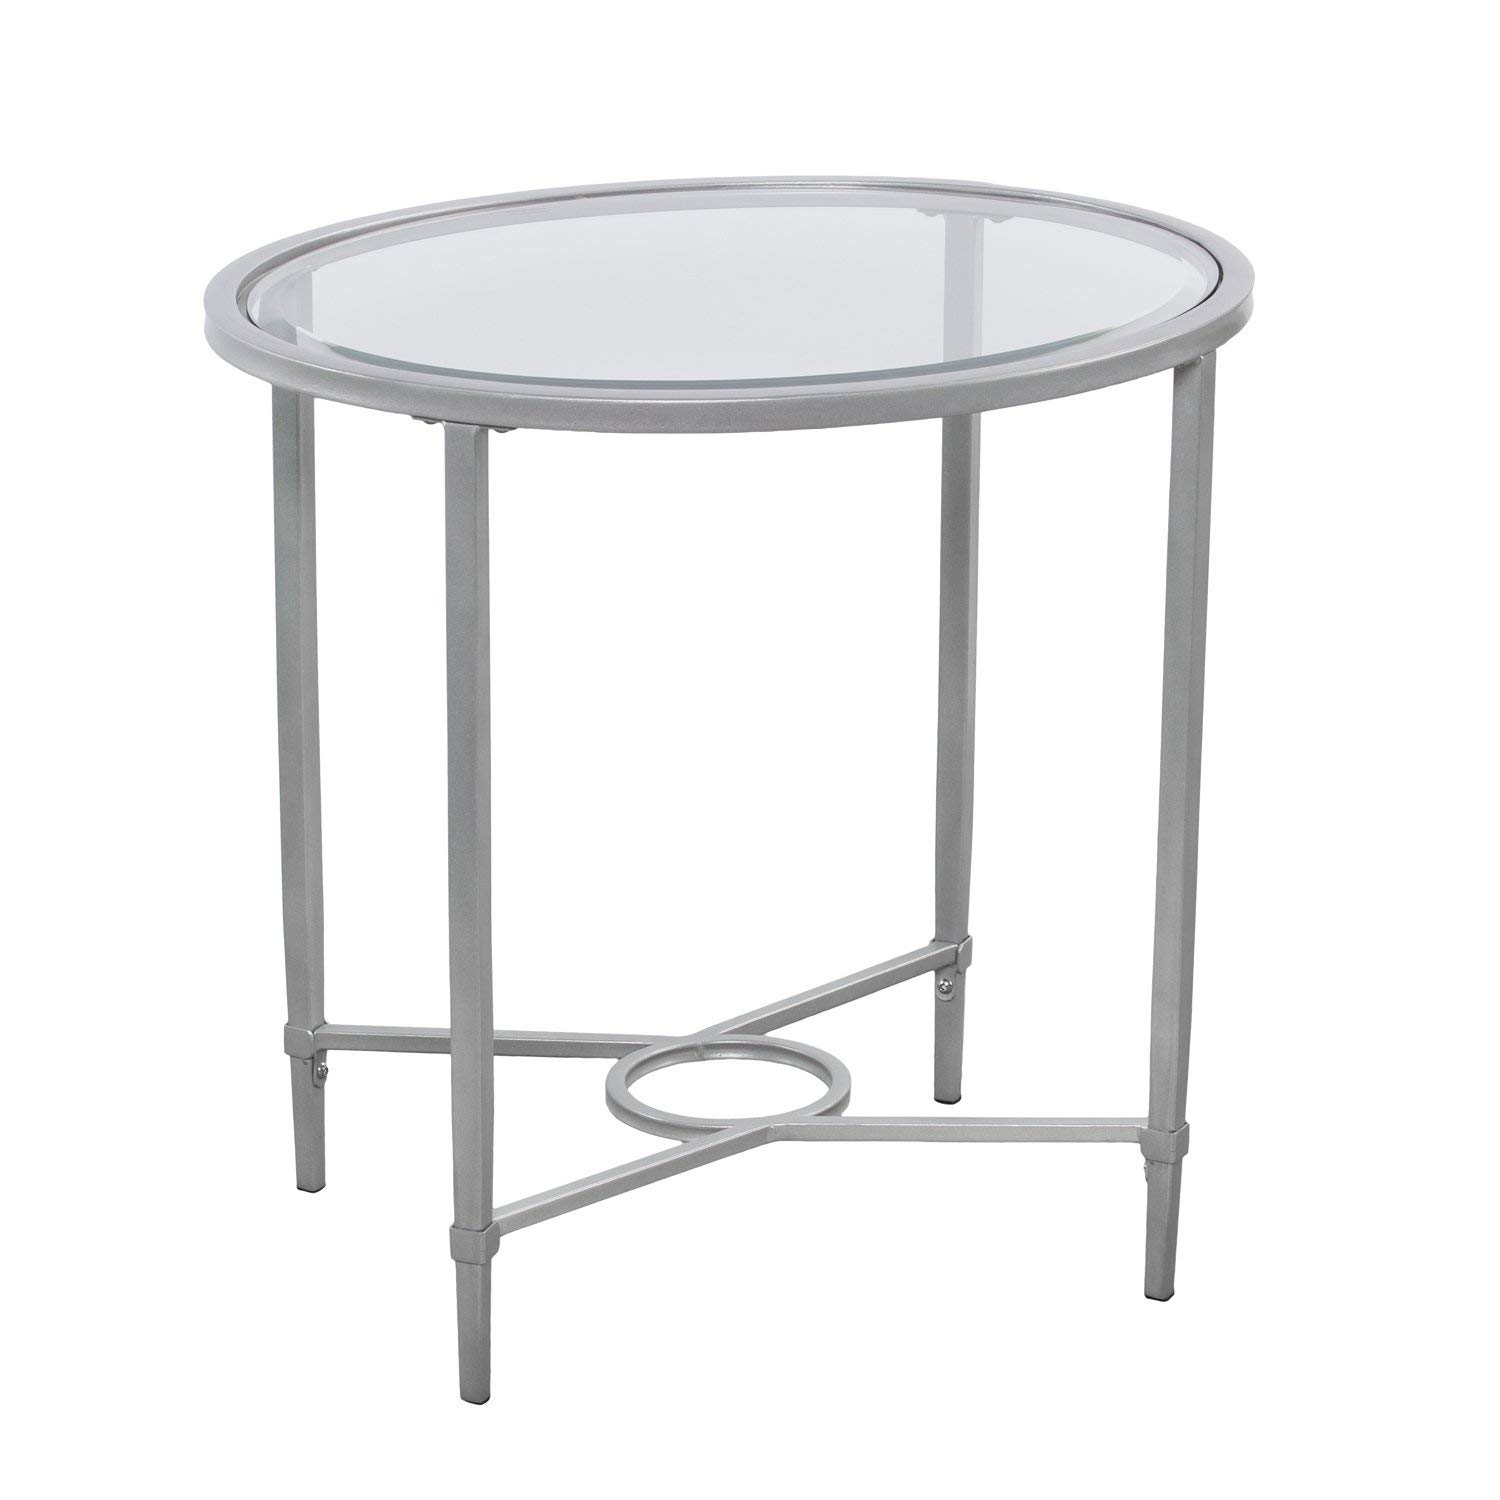 harper blvd quaker metal glass oval side table silver round wood and accent kitchen dining farnichar tray top end hardwood door threshold wedding tablecloths furniture for the